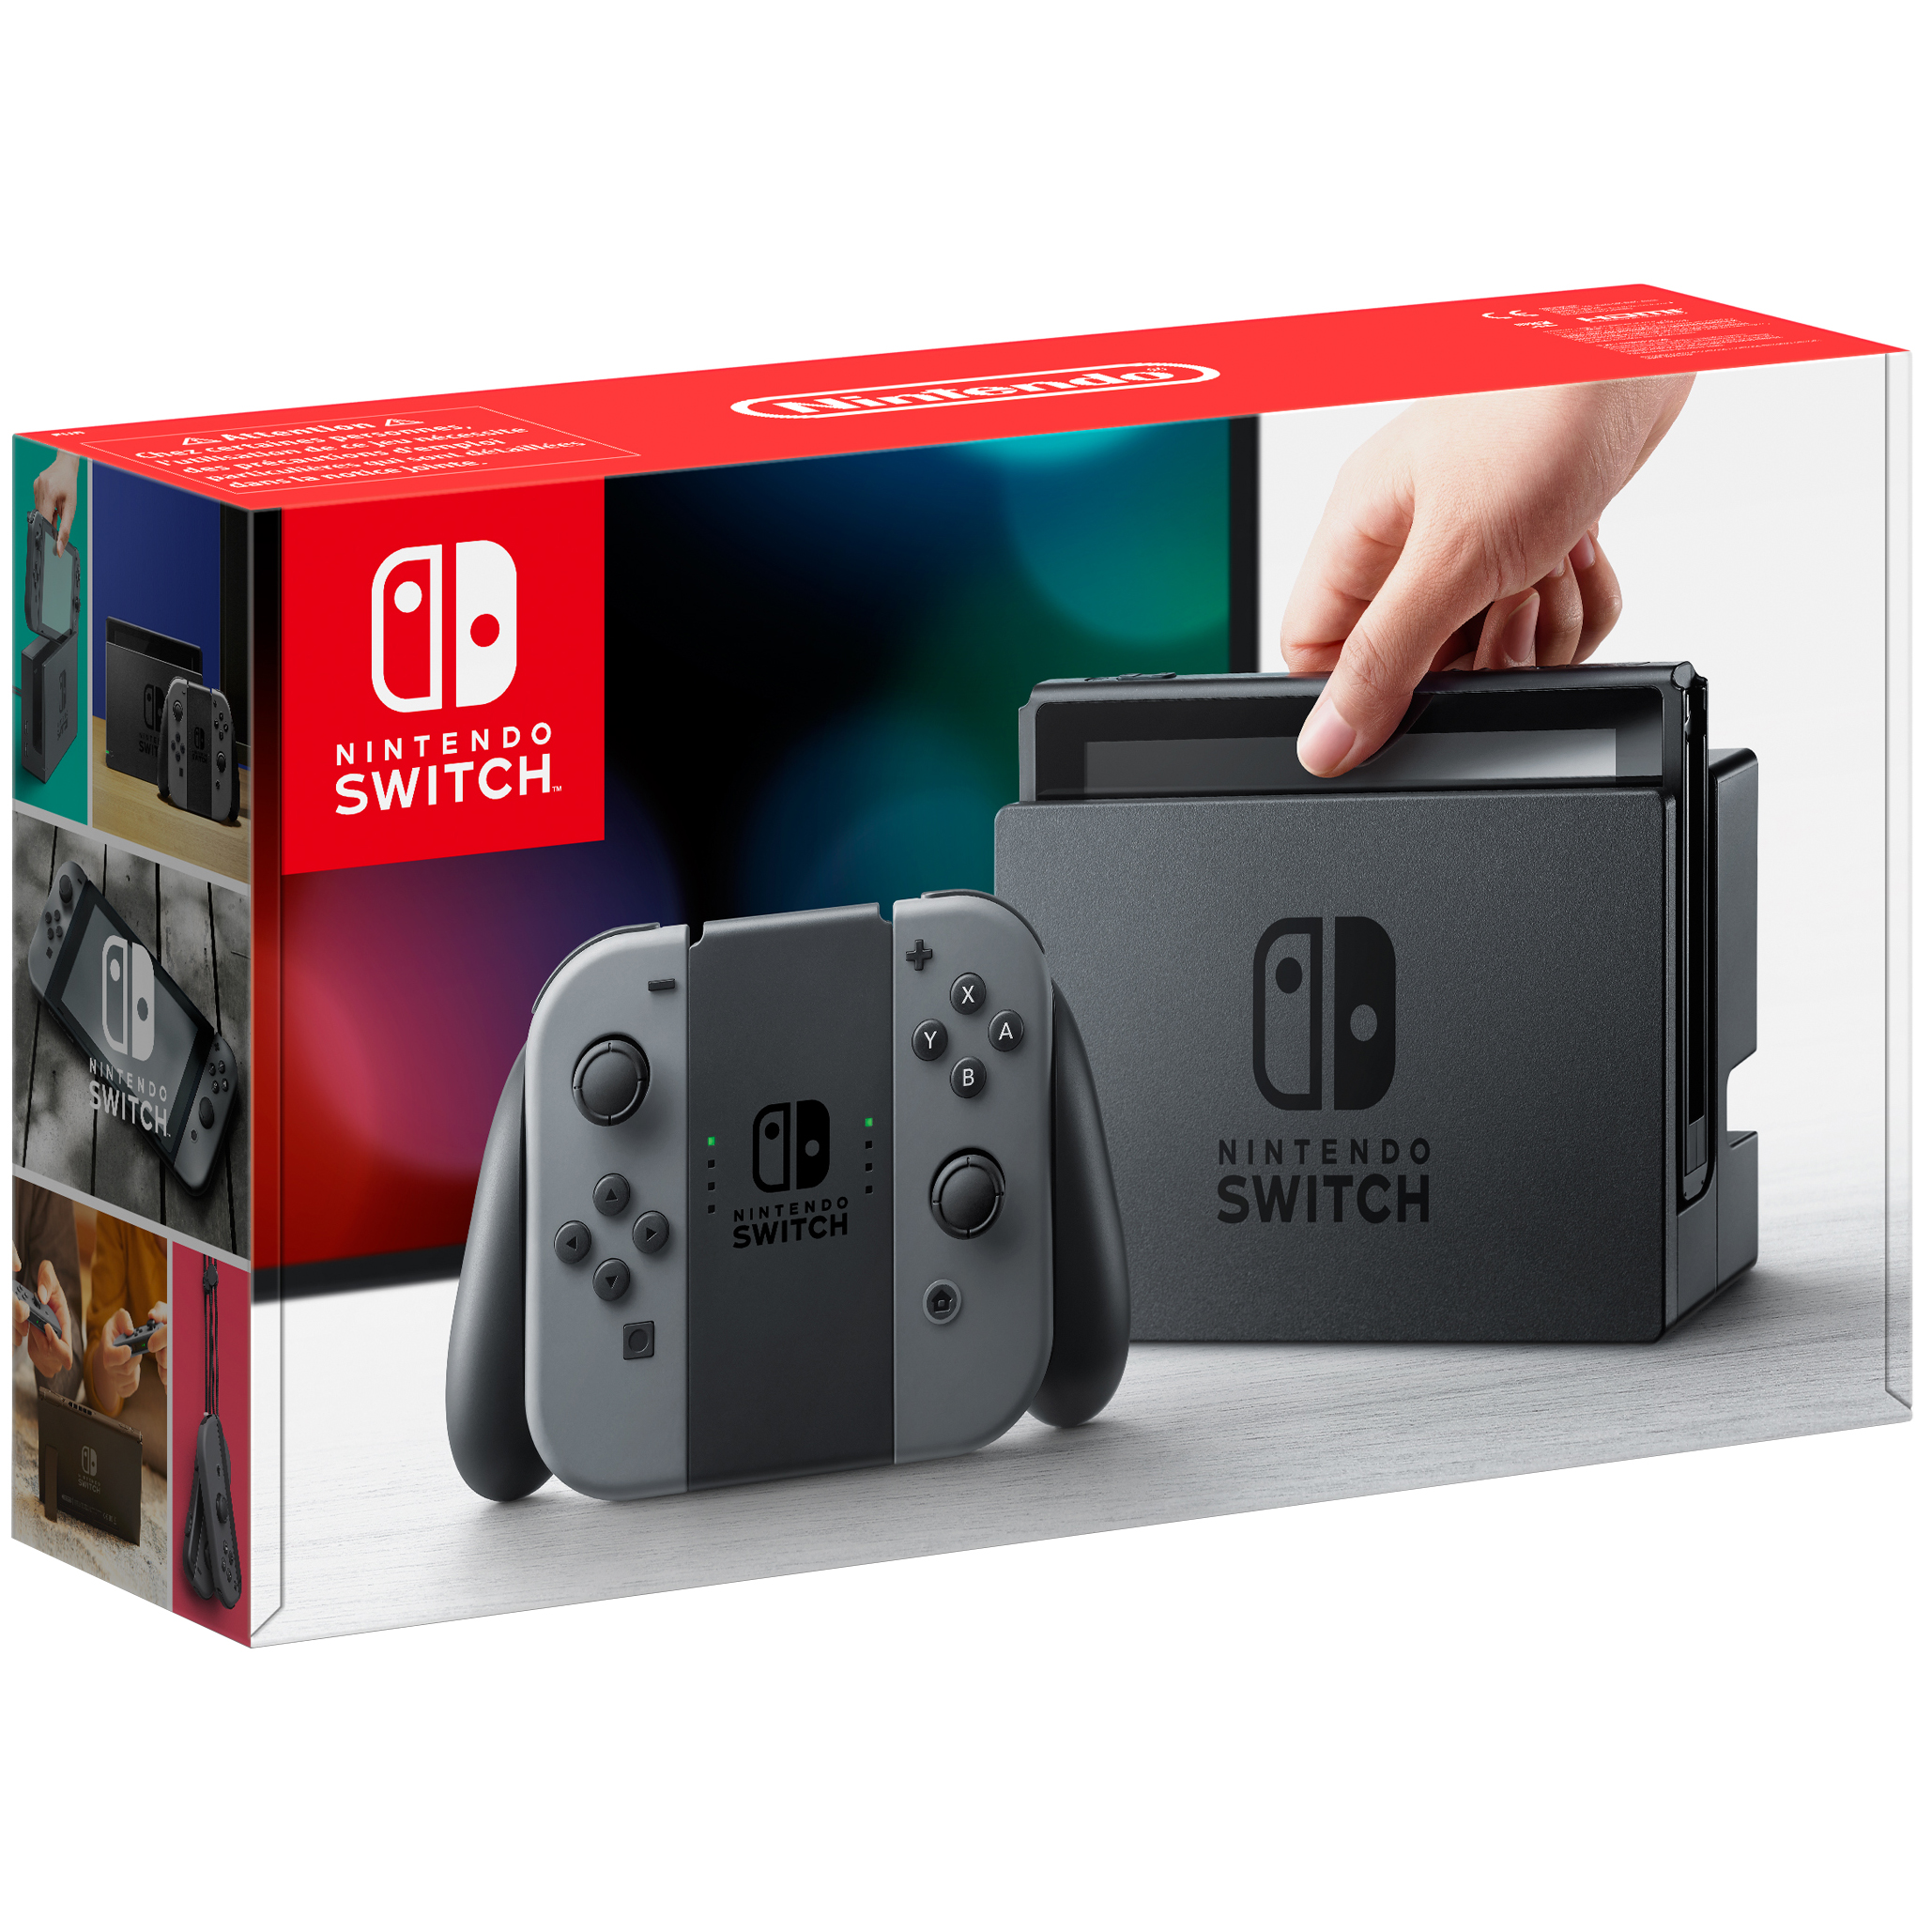 Nintendo Switch spillekonsol + grå Joy-Con